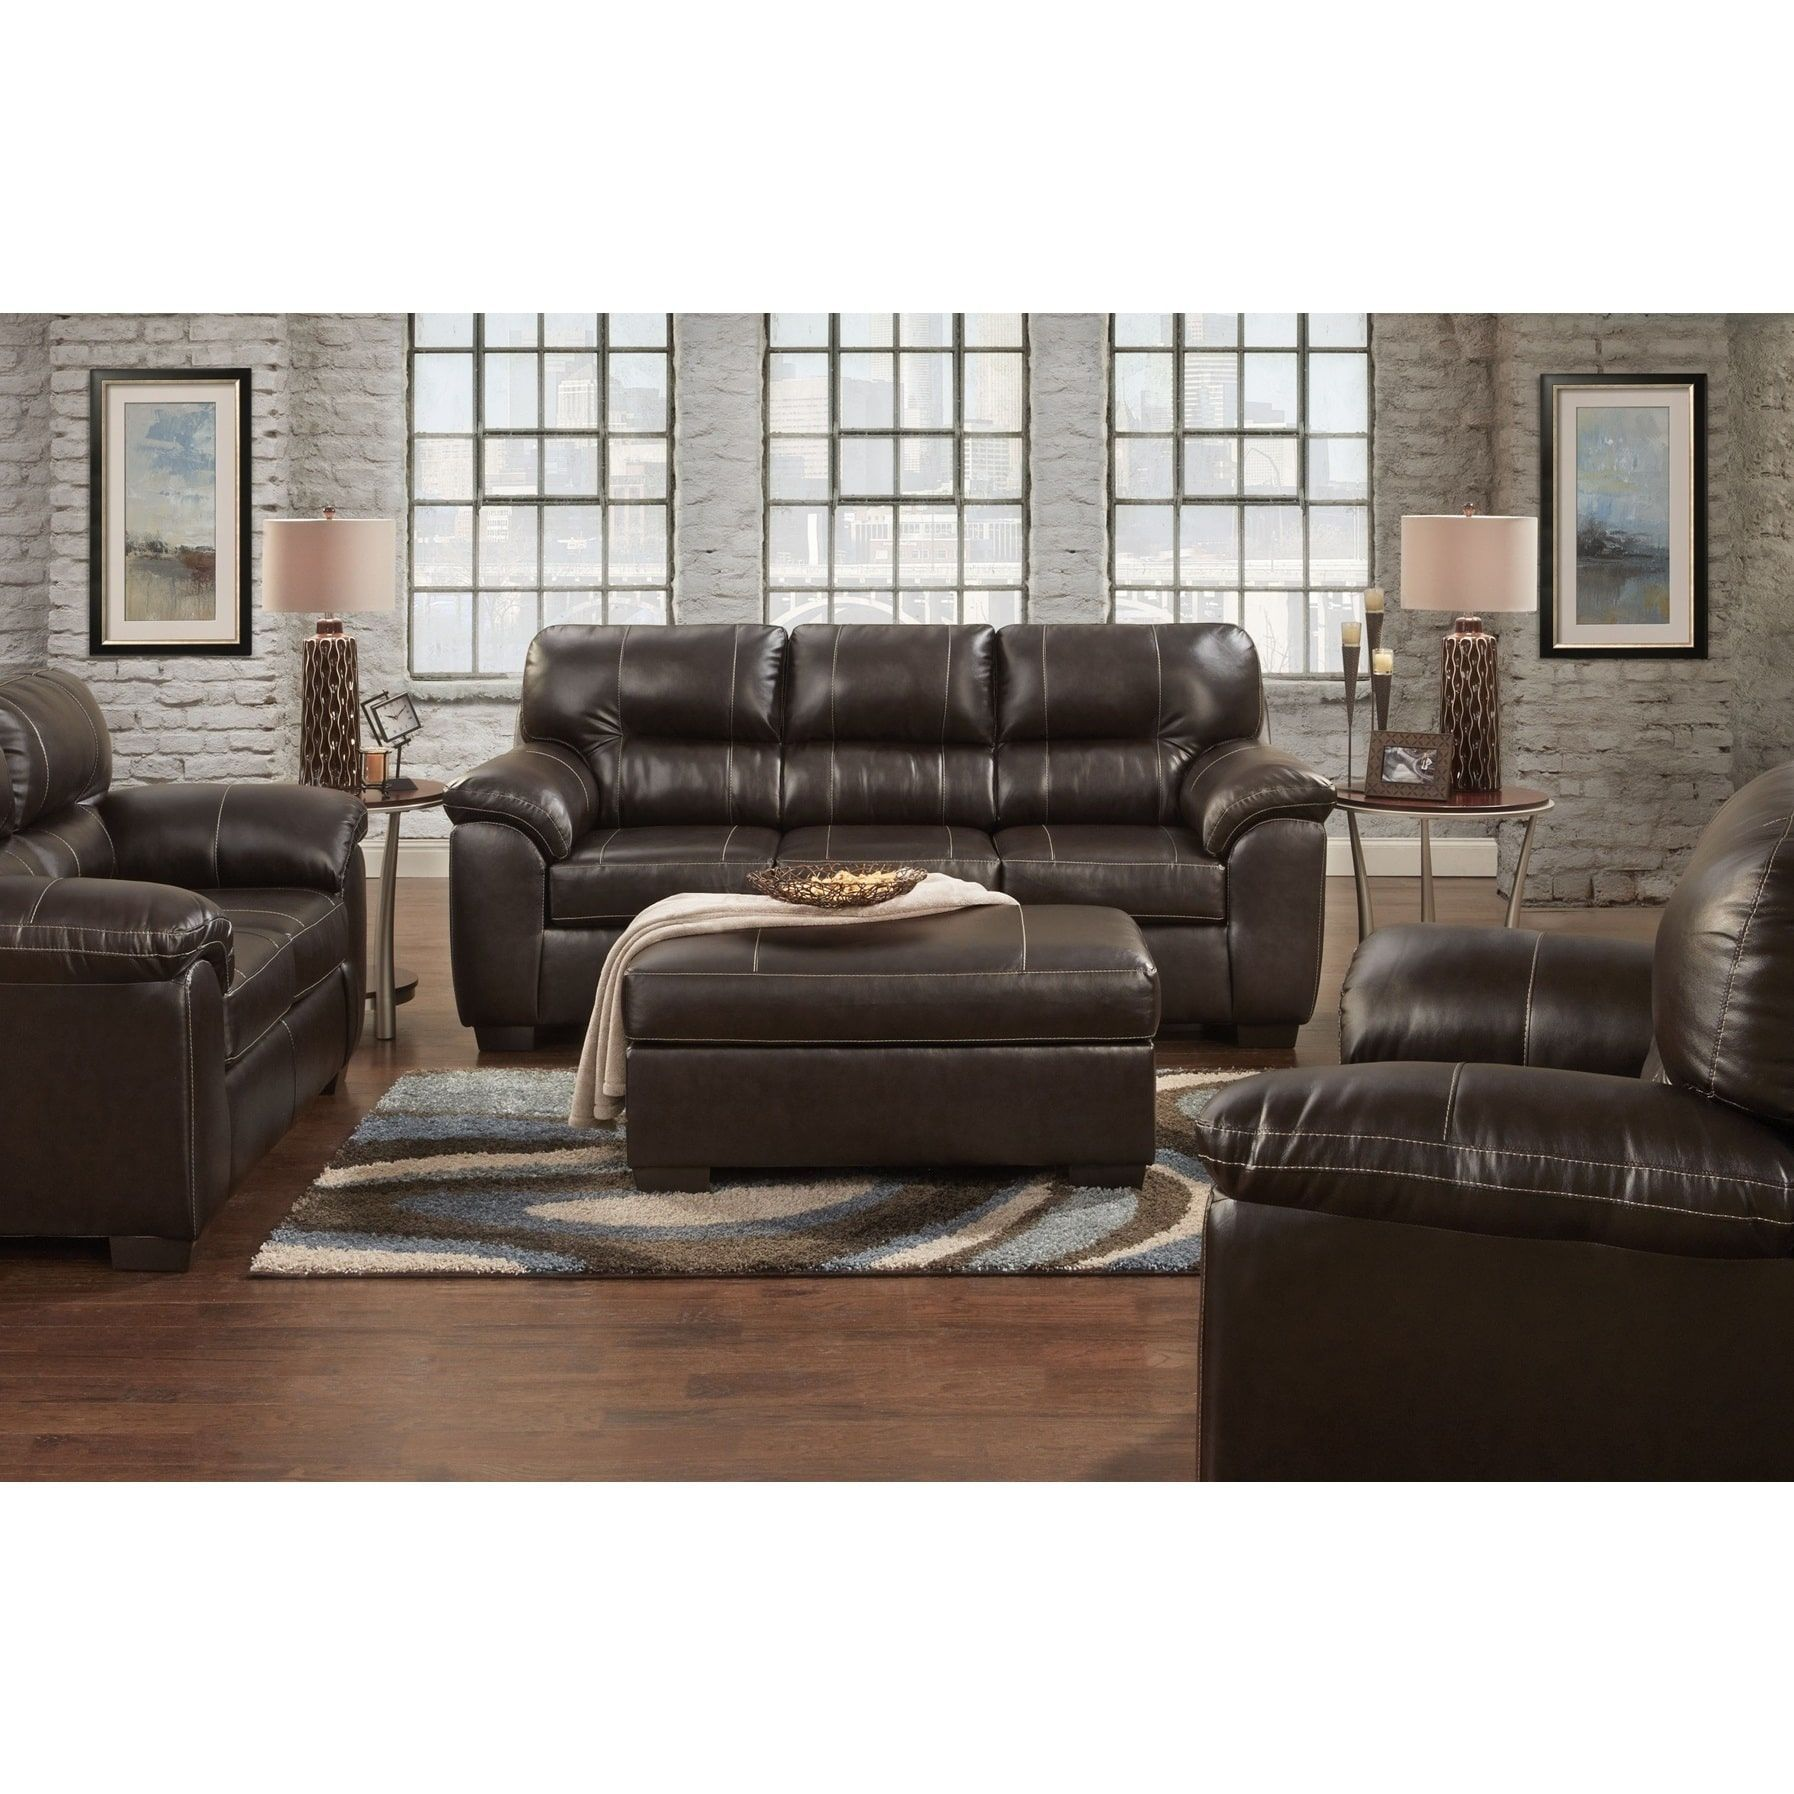 leeds pu leather living room set with sofa and loveseat set in